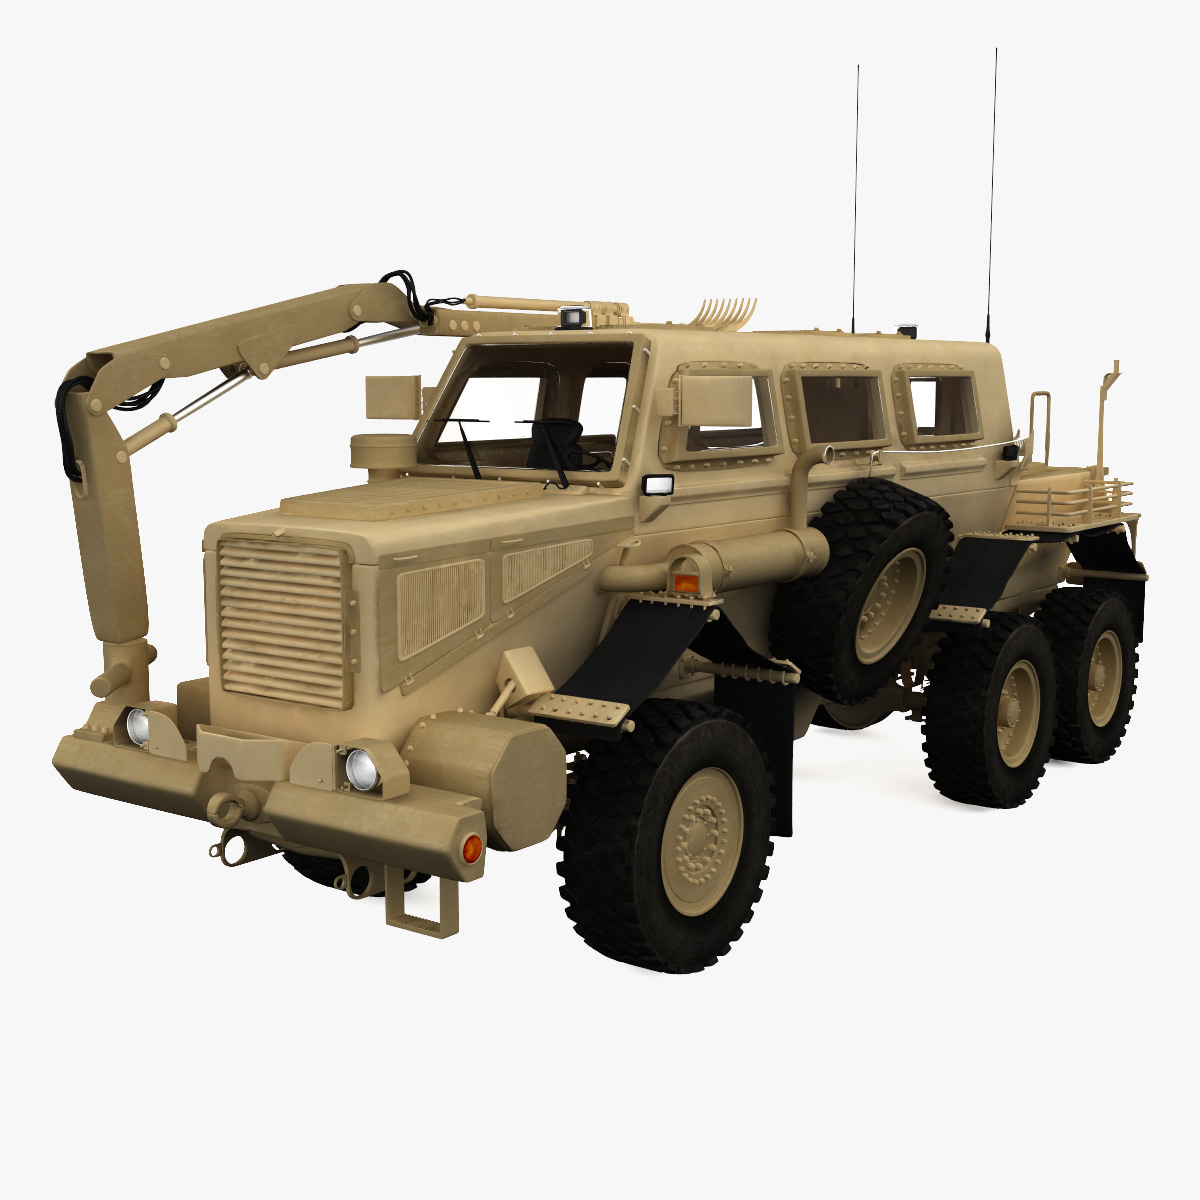 Buffalo_Mine_Protected_Vehicle_00.jpg